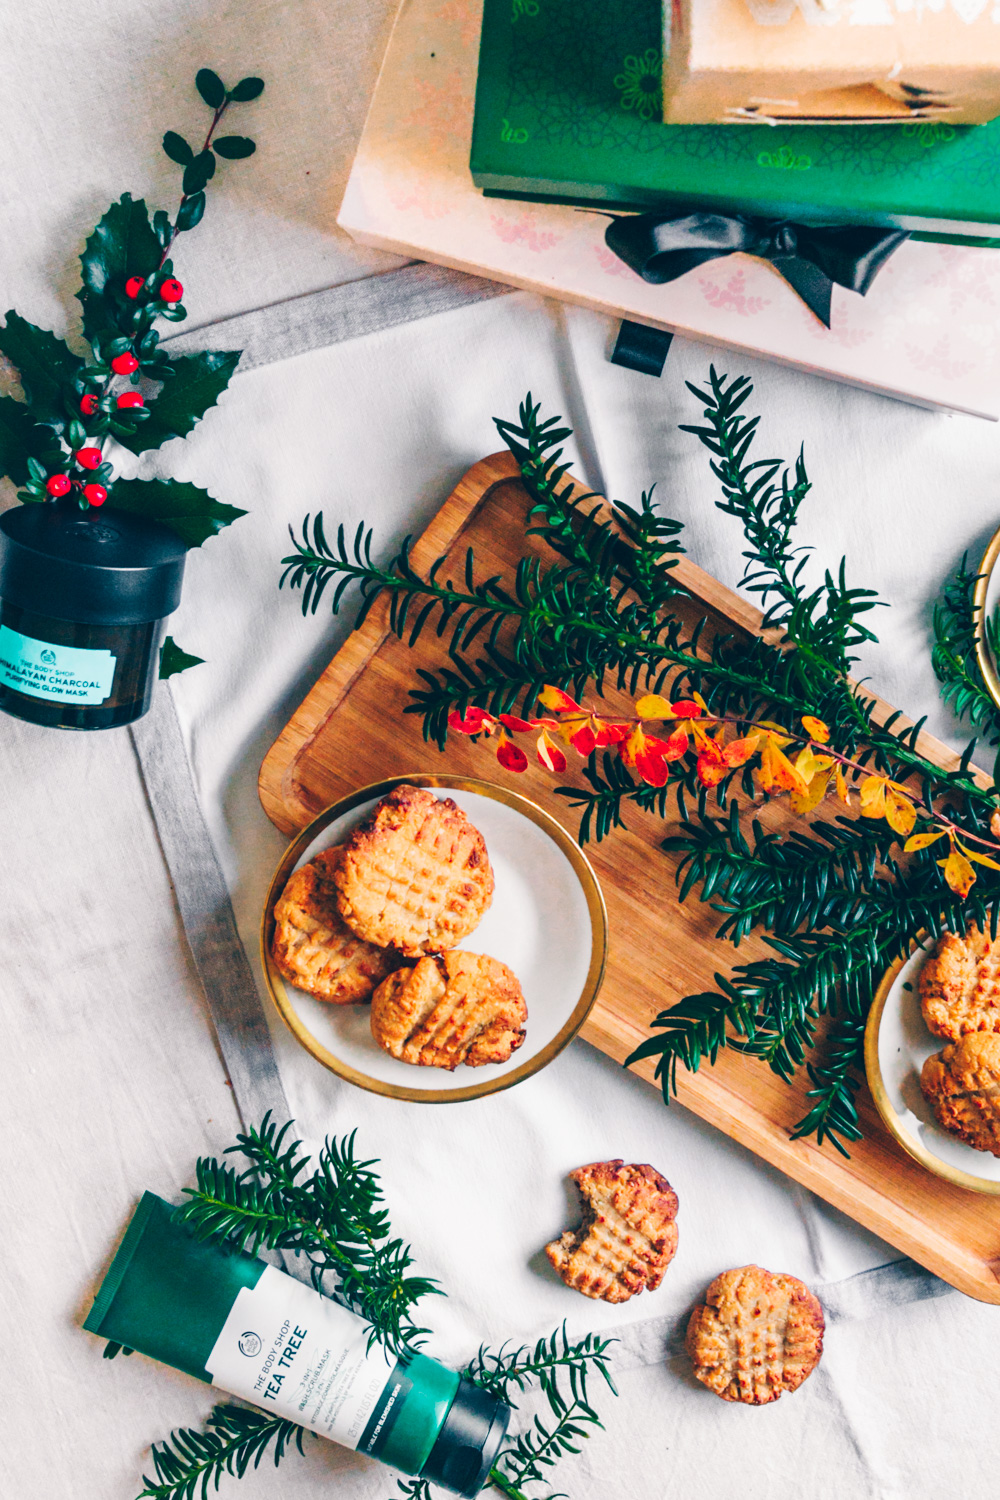 Christmas Peanut Butter Cookies + The Body Shop Giveaway by black.white.vivid.